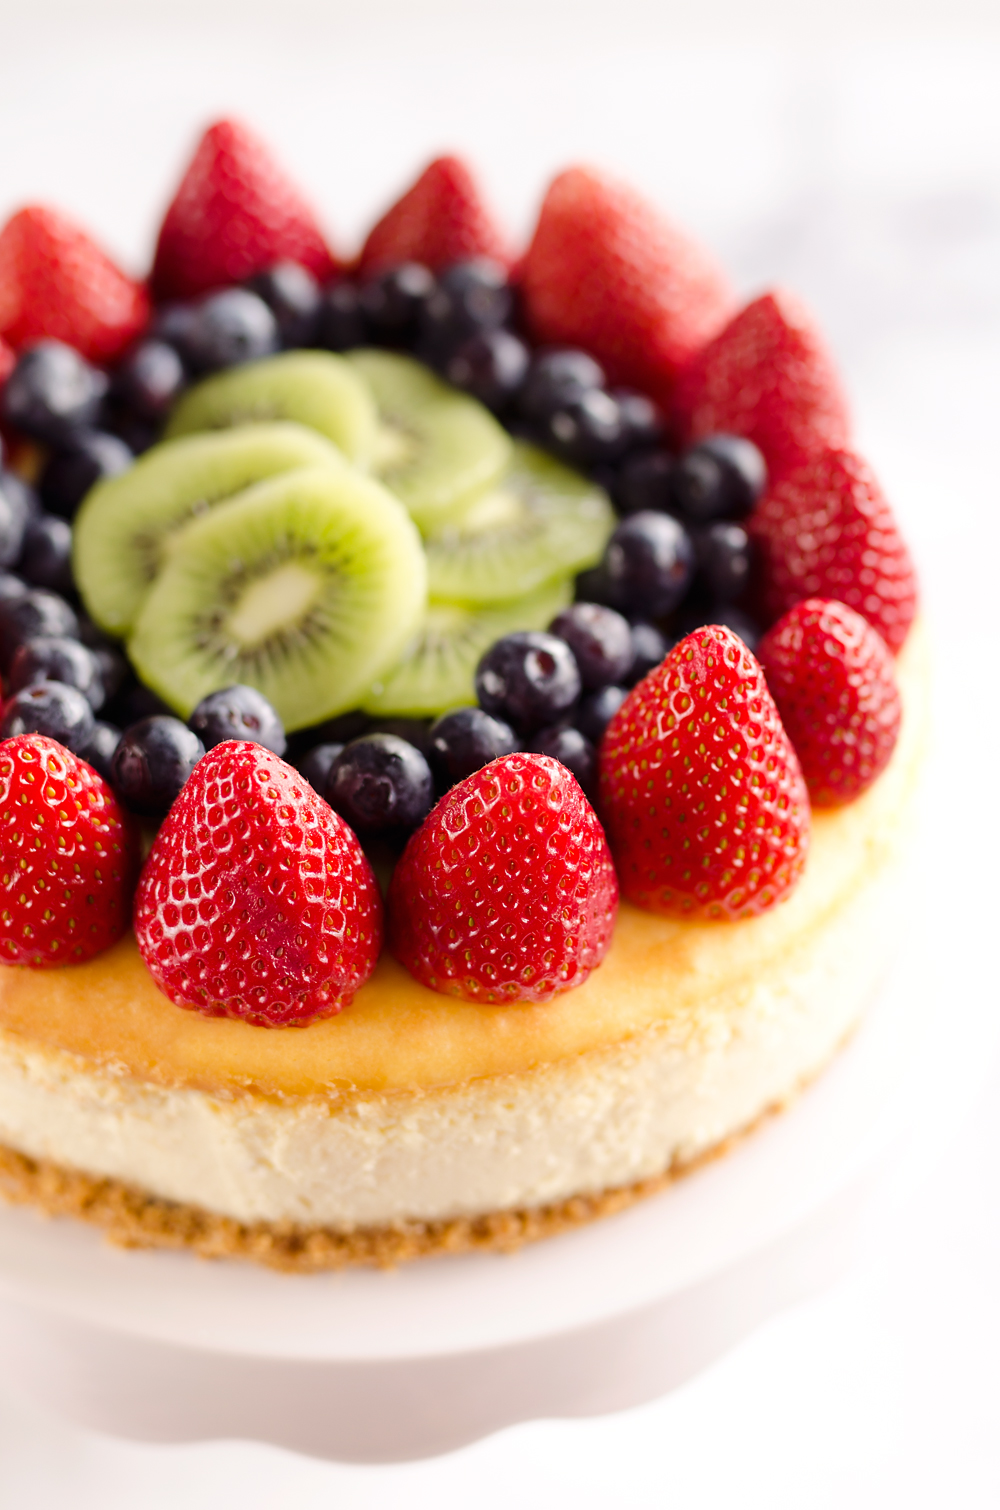 DIFFERENT WAYS TO MAKE VERY DELICIOUS FRESH-FRUIT CHEESECAKE 3